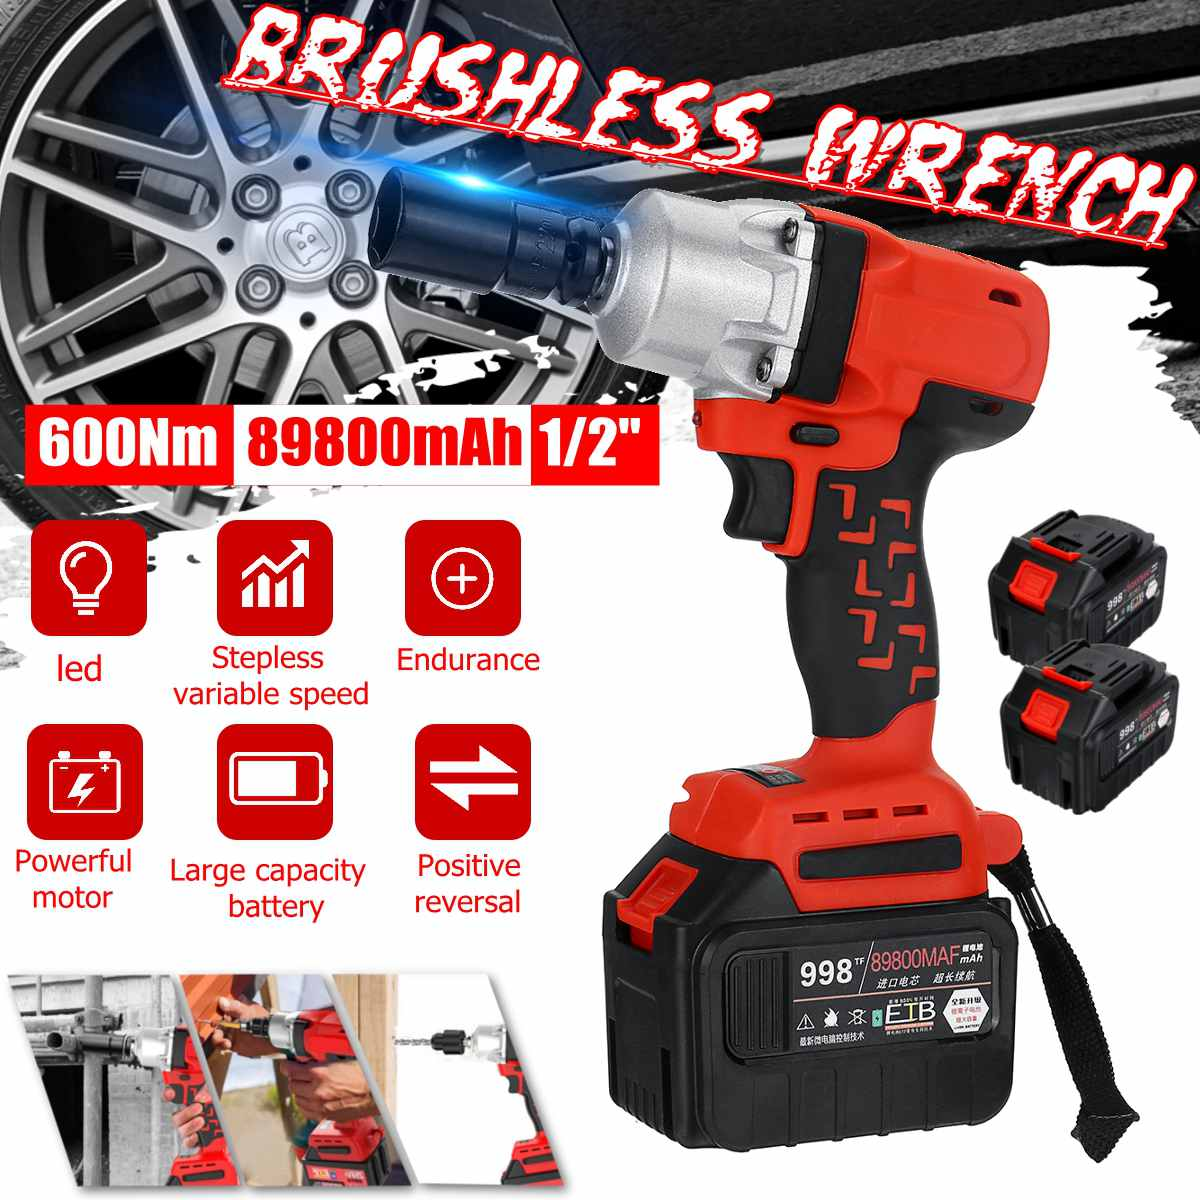 "Rechargeable Cordless Impact Electric Wrench 600Nm 89800mAh Torque Household Car/SUV Wheel 1/2"" Socket Wrench Power Tool"